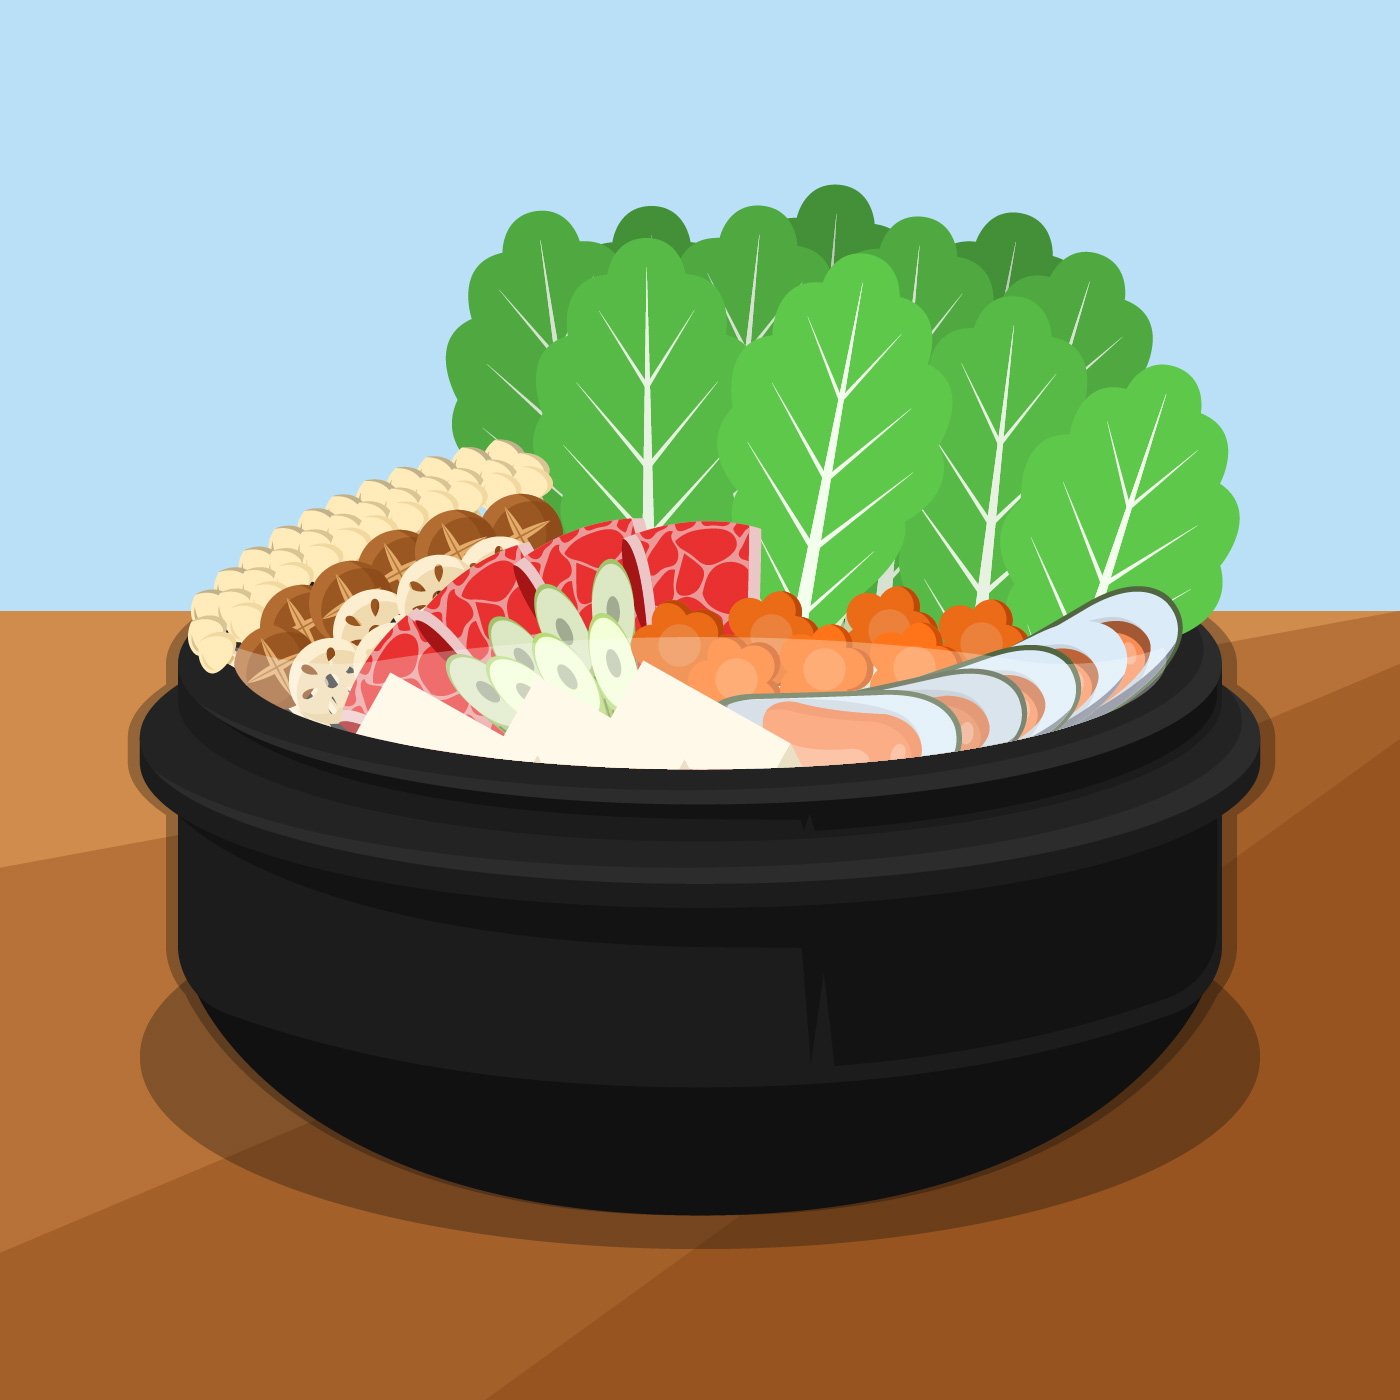 Hotpot And Ingredients Vector Illustration Download Free